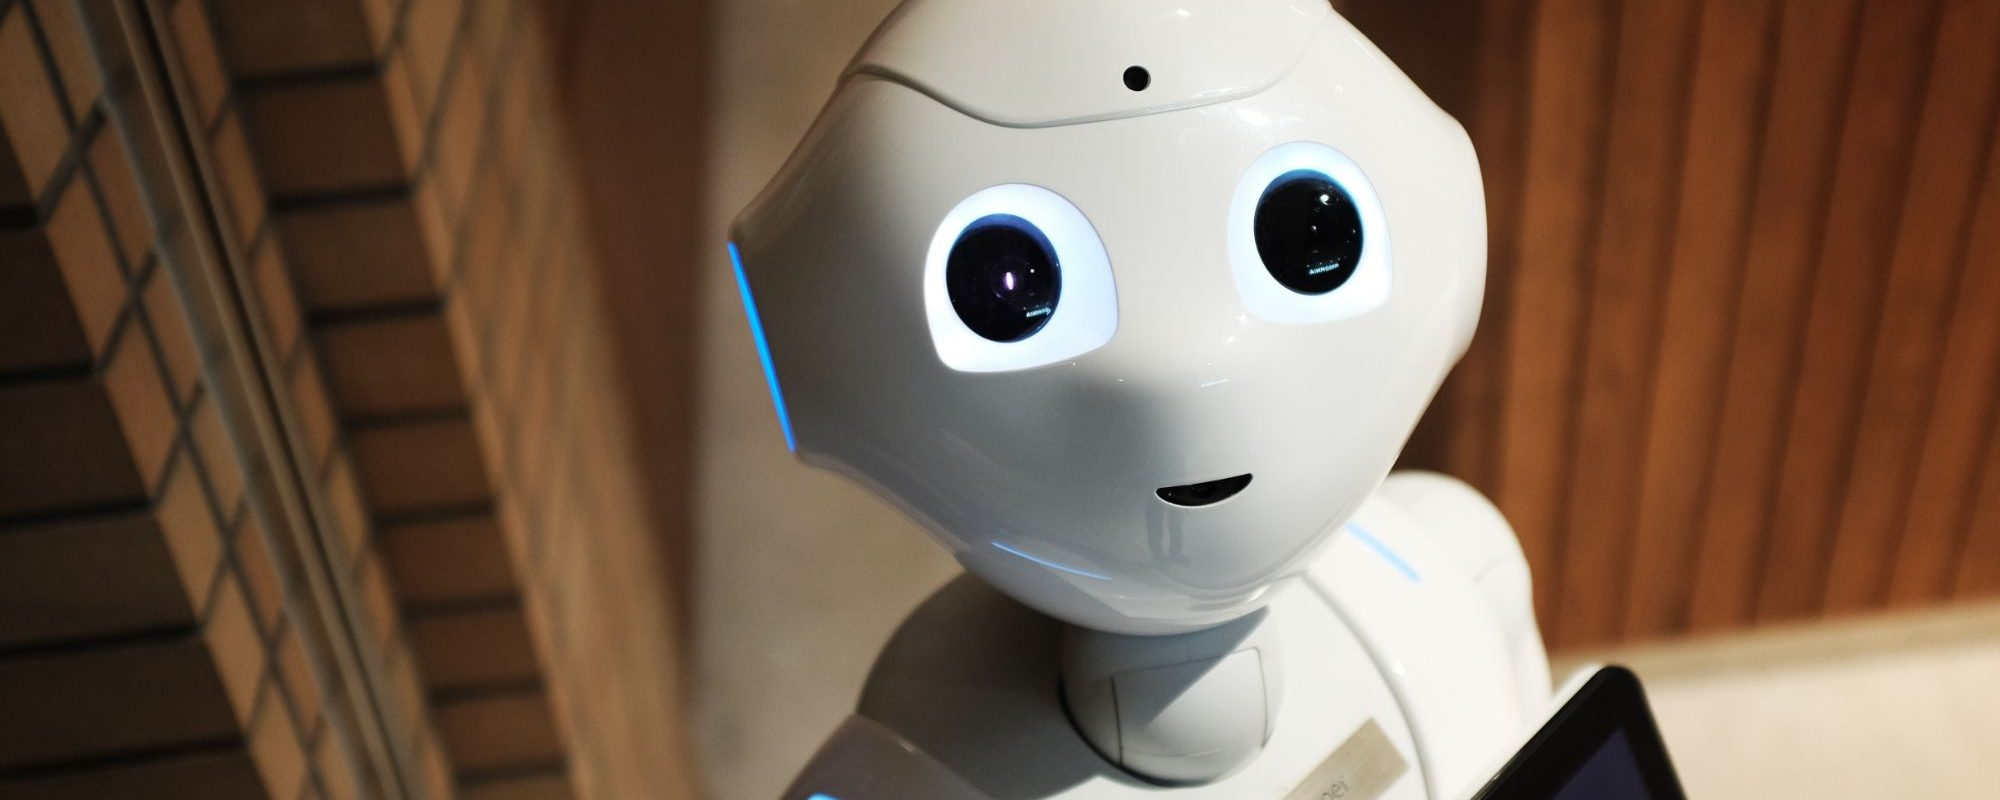 An A.I. powered robot called pepper.